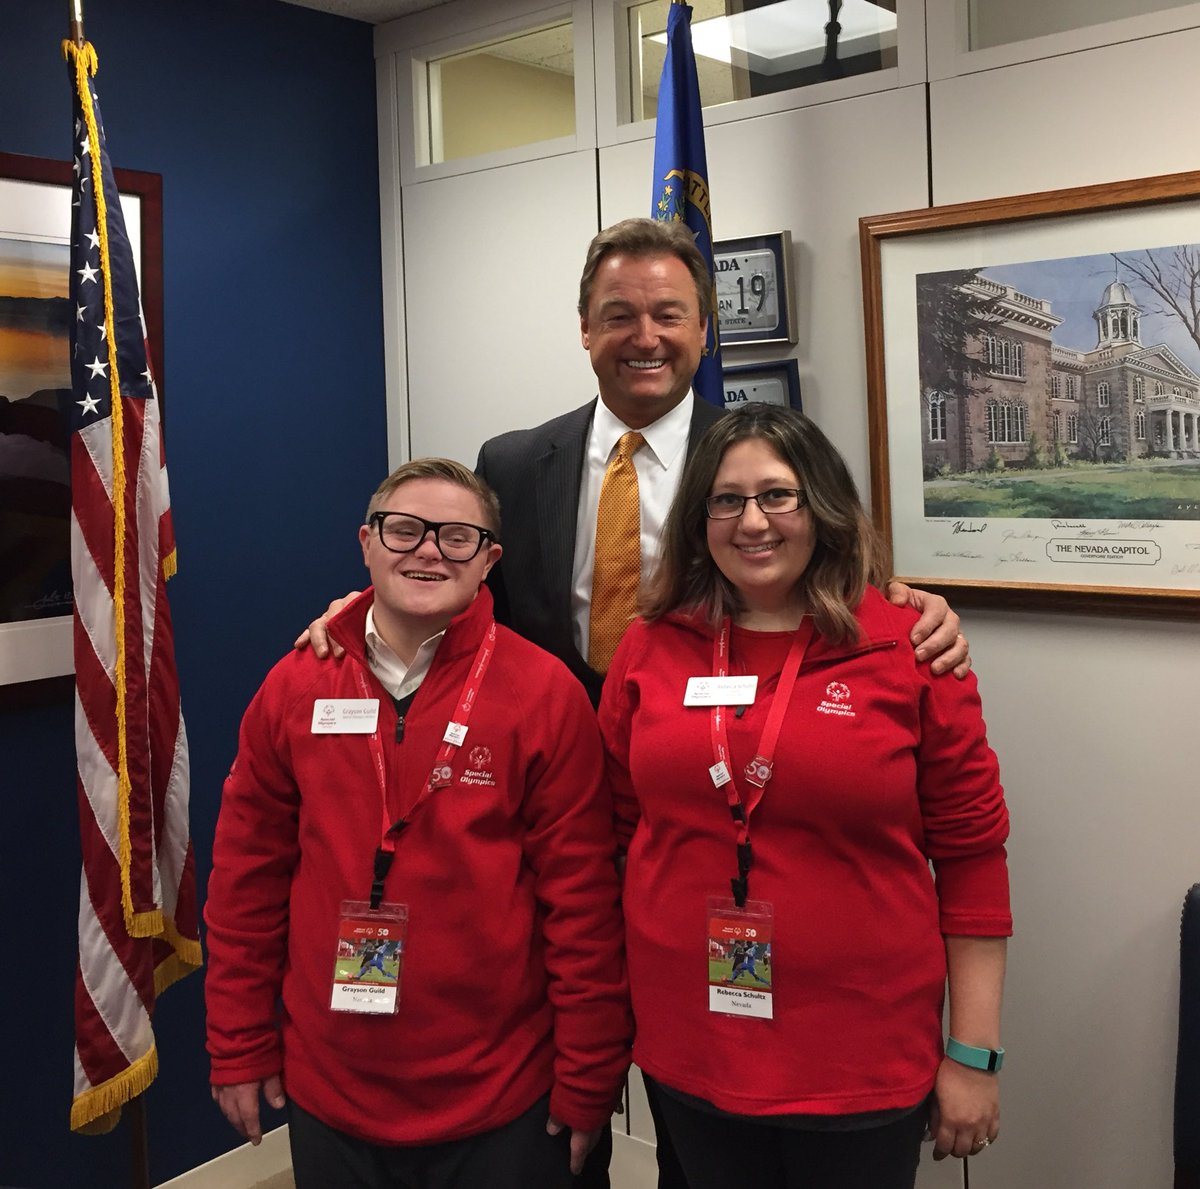 It was an honor to meet with Senator @DeanHeller to advocate for @SpecialOlympics & promote Unified Champion Schools & #InclusiveHealth. #SOHillDay https://t.co/jhN6OnjAr2